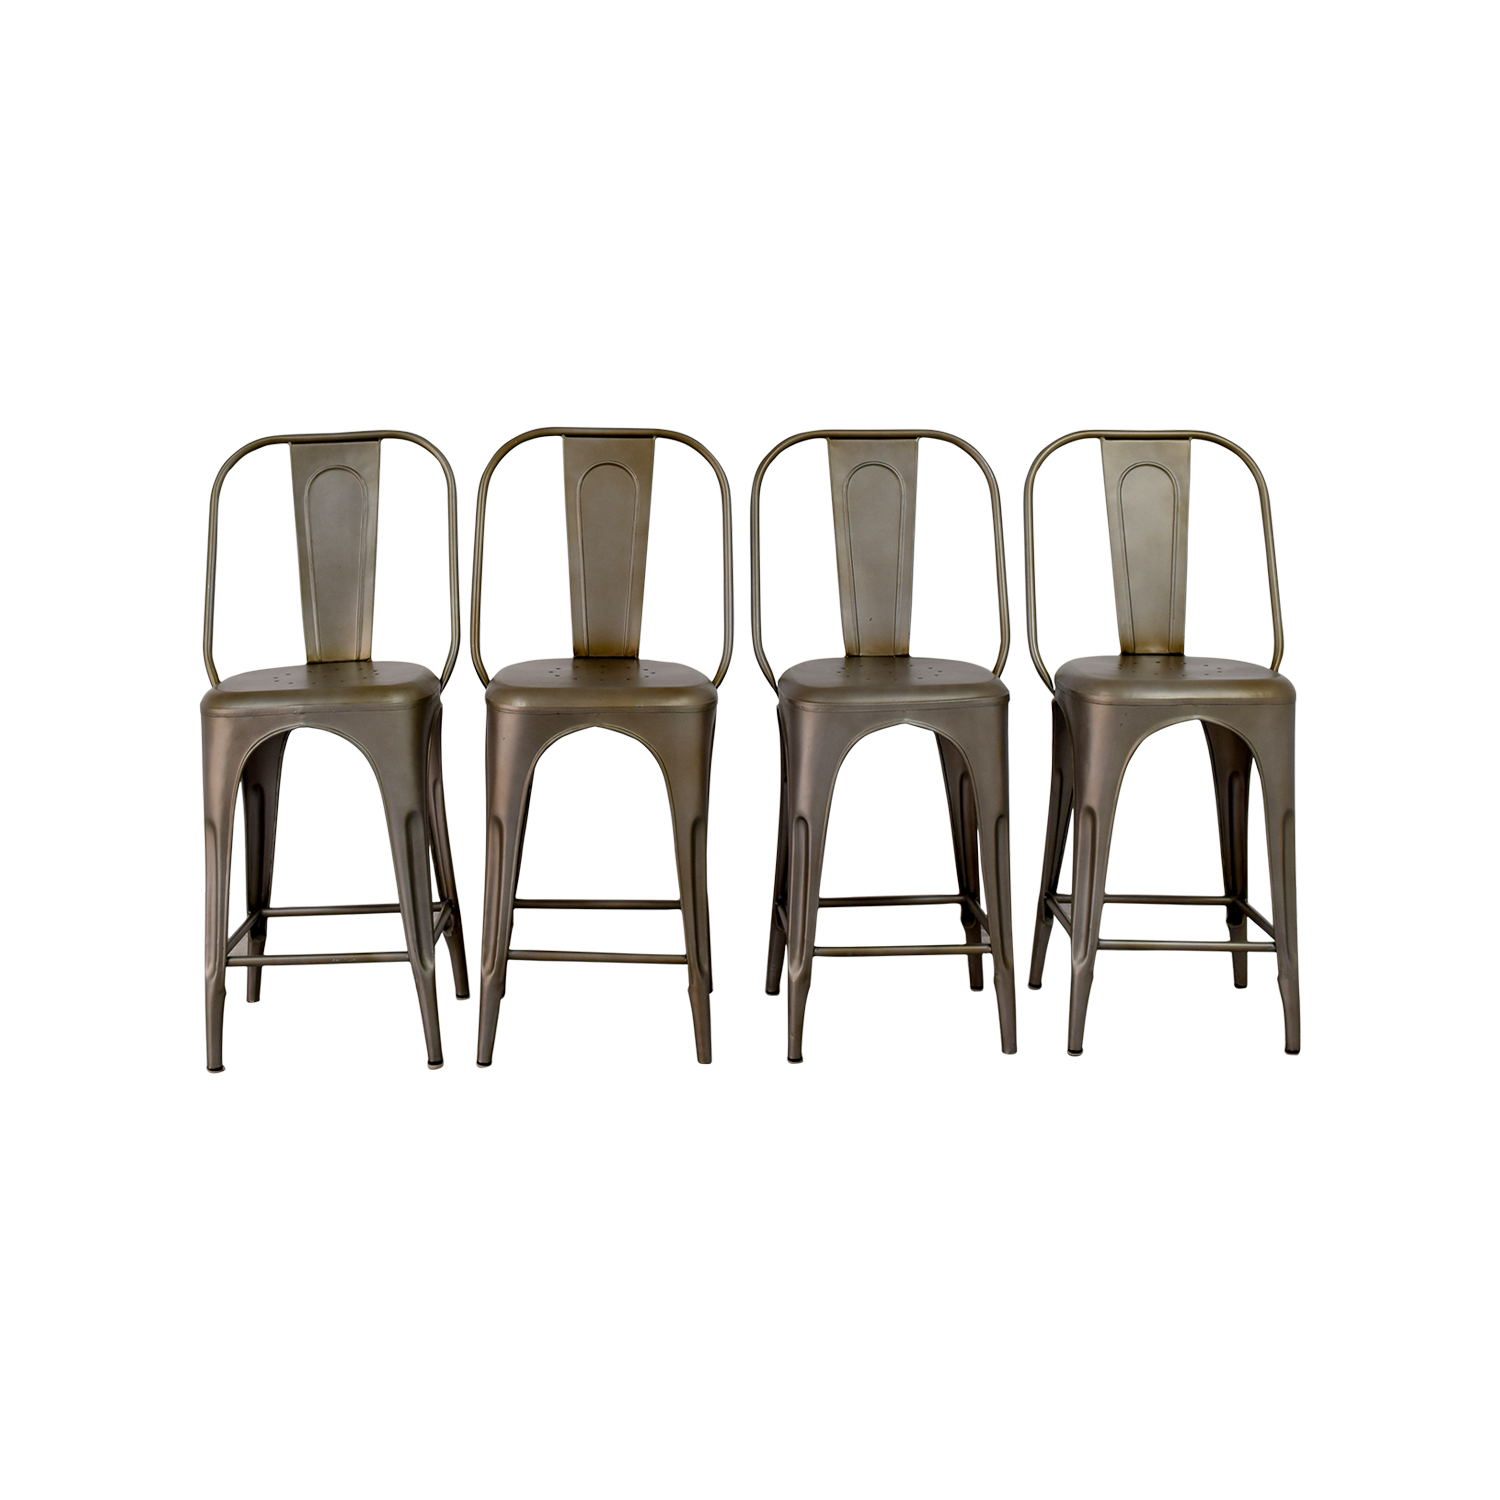 buy Restoration Hardware Remy Stools Restoration Hardware Chairs